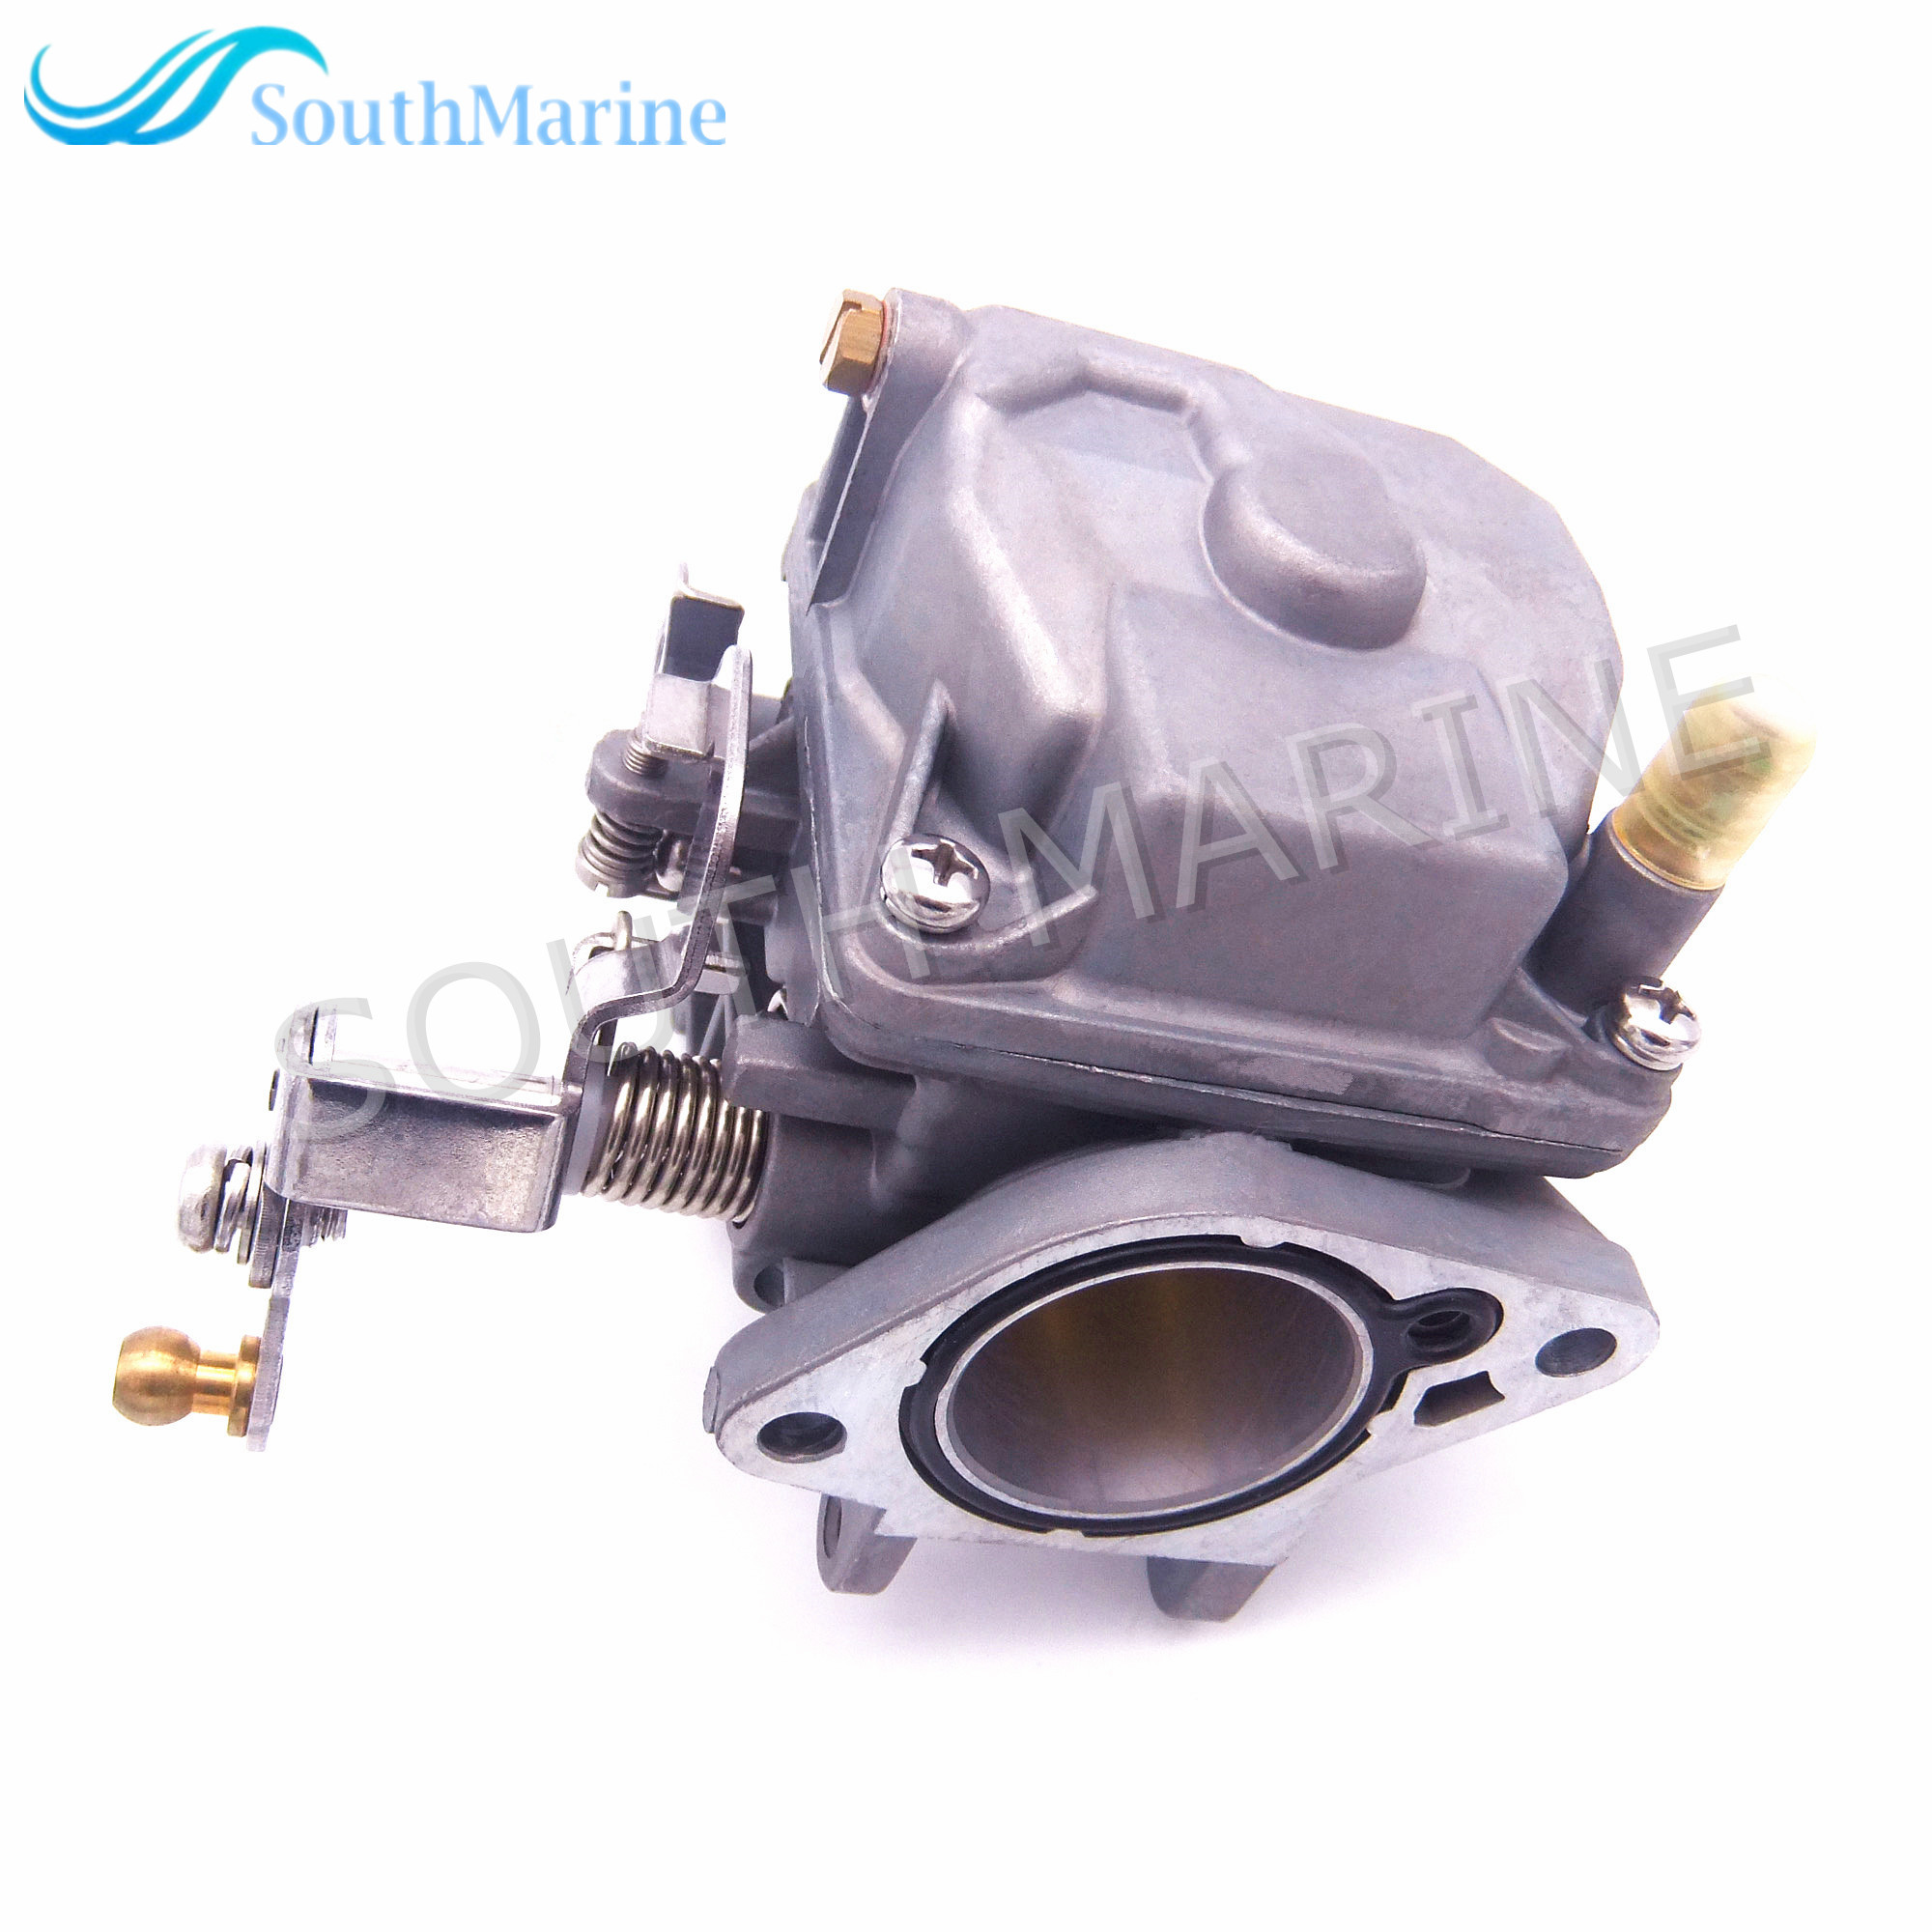 Outboard Engine Carburetor Assy 30F-01.03.03.00 for Hidea 2-stroke 25F 30F Boat Motor Free Shipping 6b4 45501 10 driver shaft long for yamaha 9 9hp 15hp 2 stroke 15d outboard engine boat motor aftermarket parts 6b4 45501